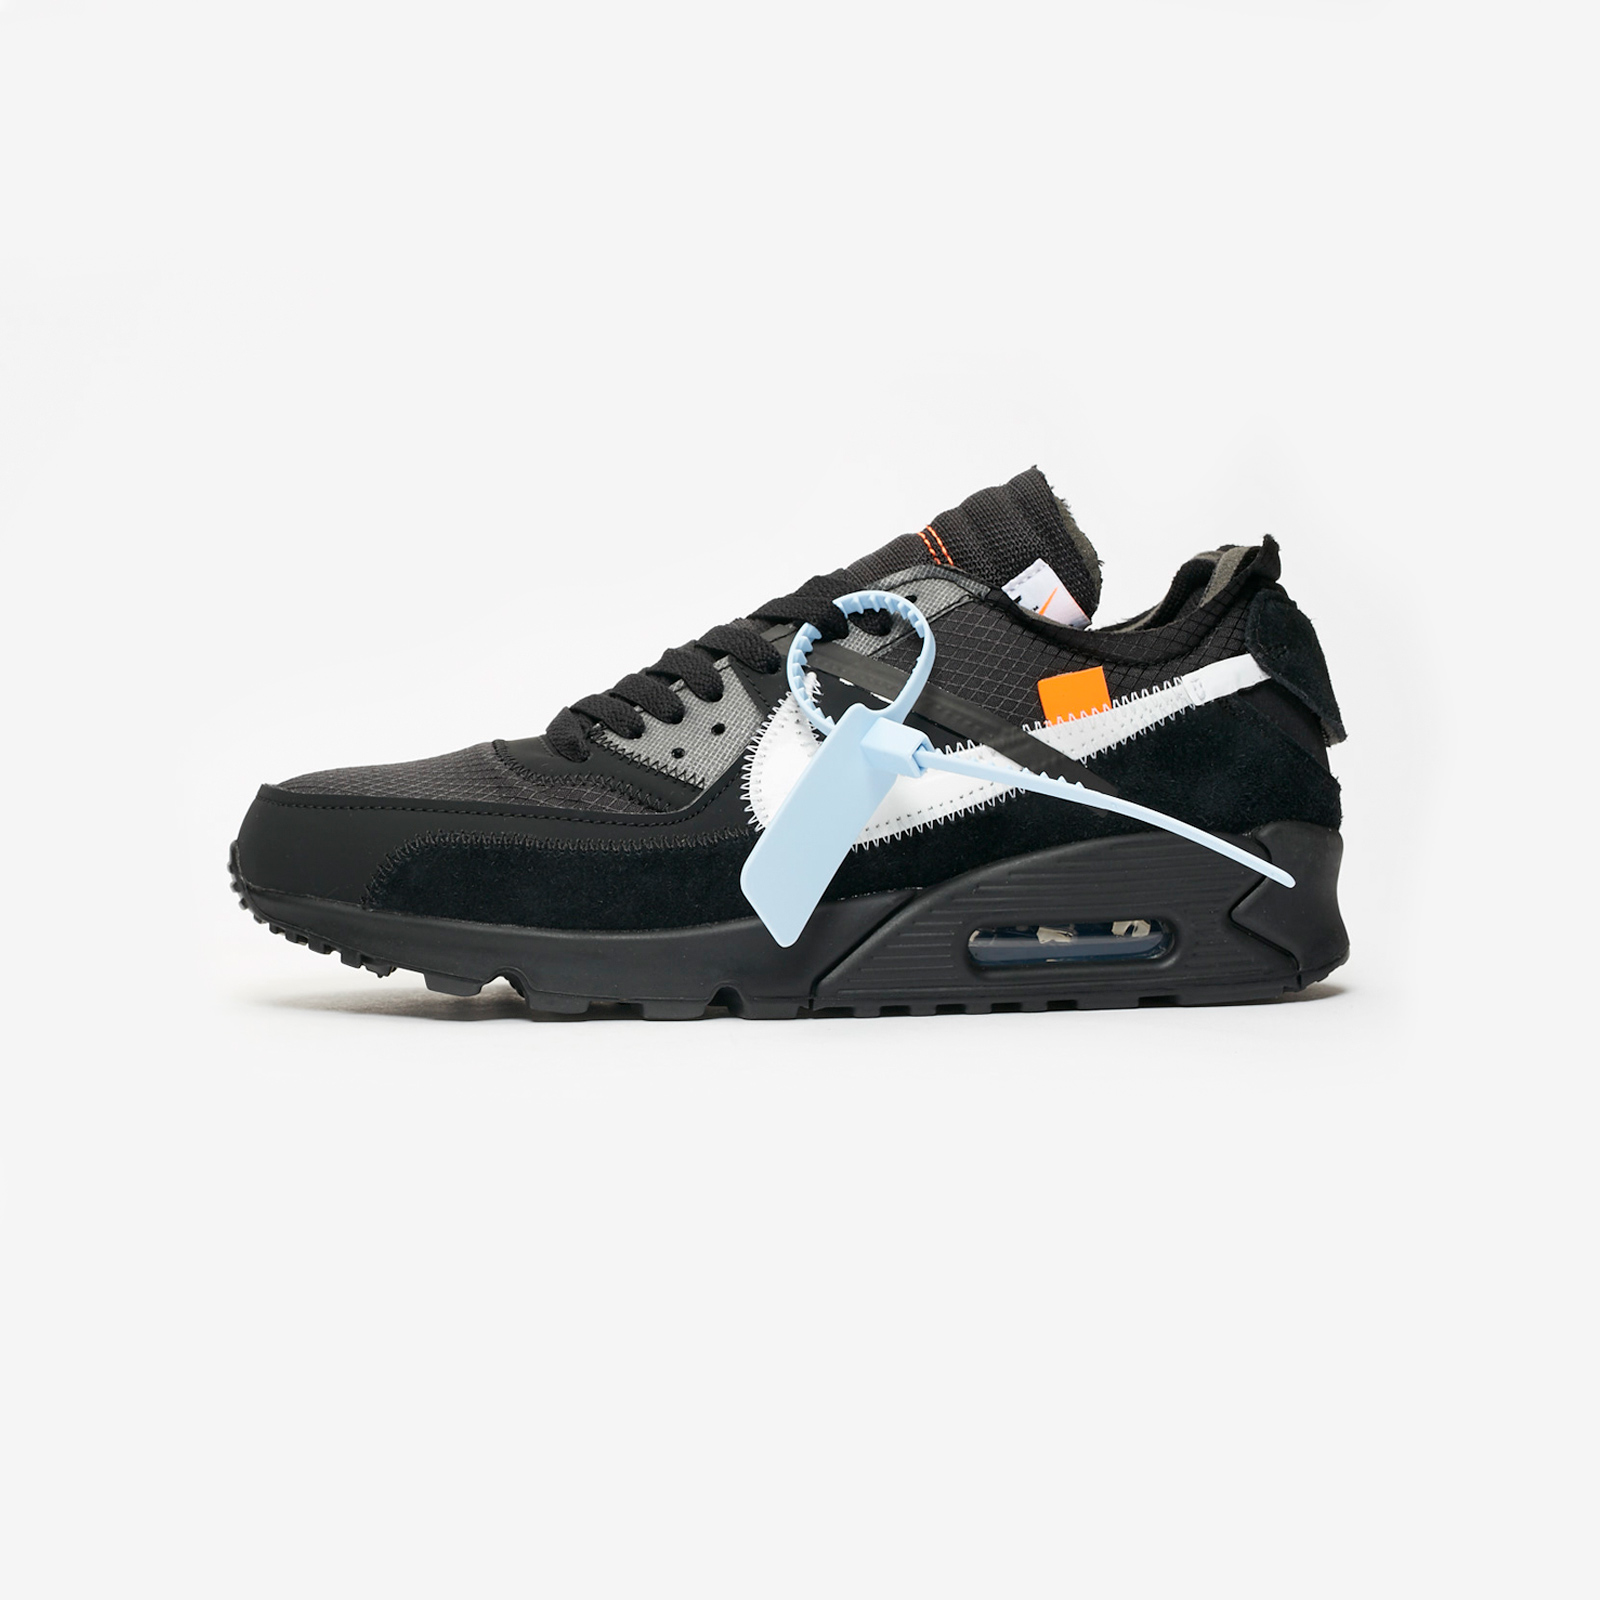 on sale faf1a 24989 Nike The 10  Air Max 90 - Aa7293-001 - Sneakersnstuff   sneakers    streetwear online since 1999